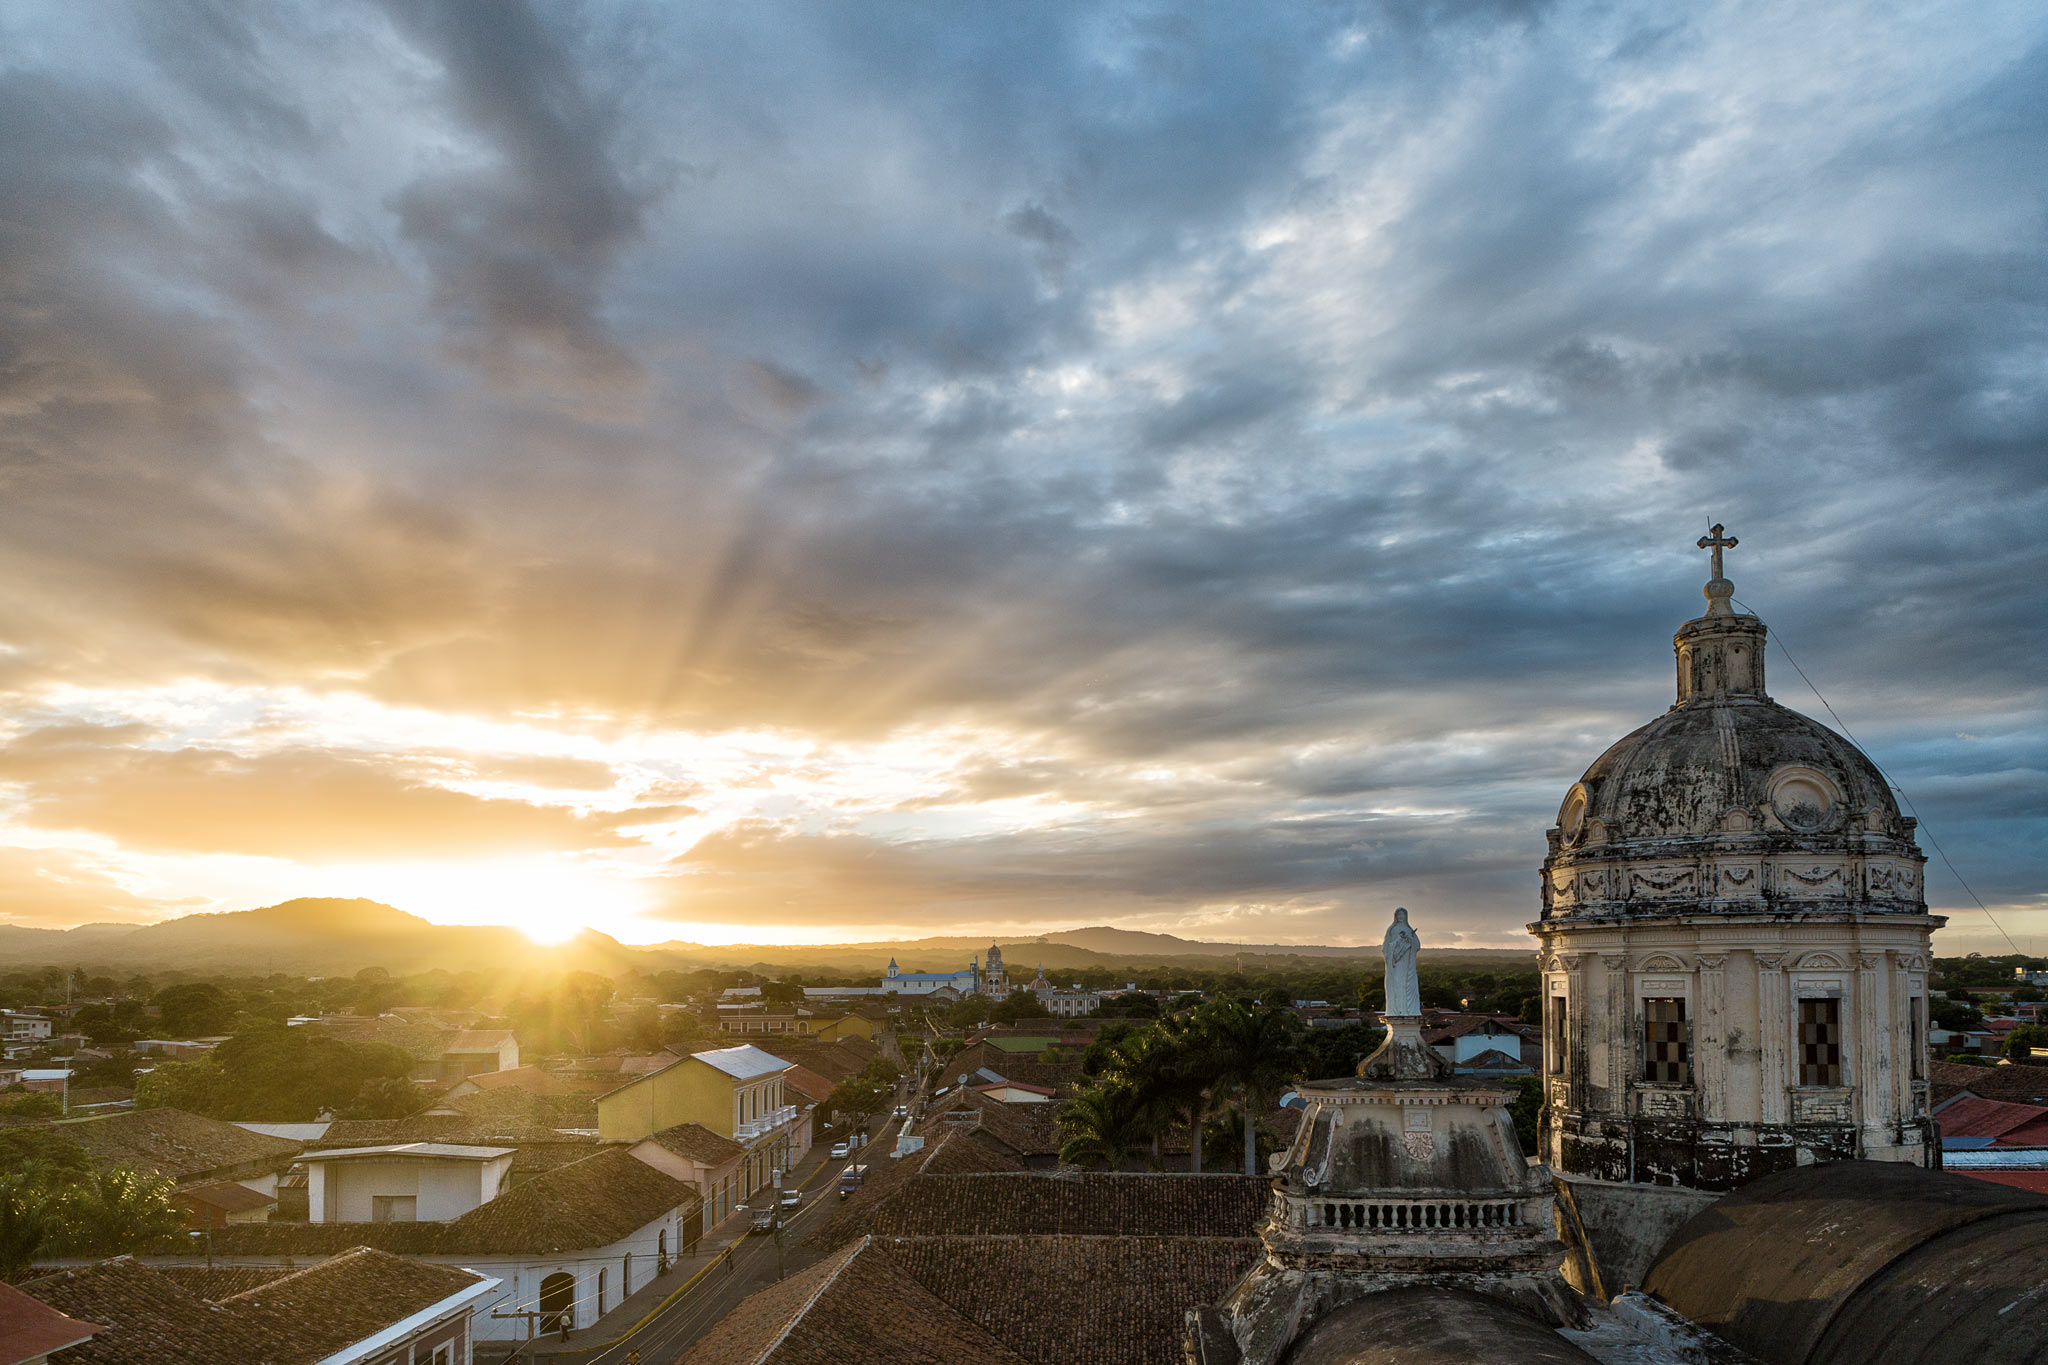 Splendid sunset in Granada. Every 15 minutes the huge church bell rung right next to us, forcing us out unto a ledge with our fingers in our ears!